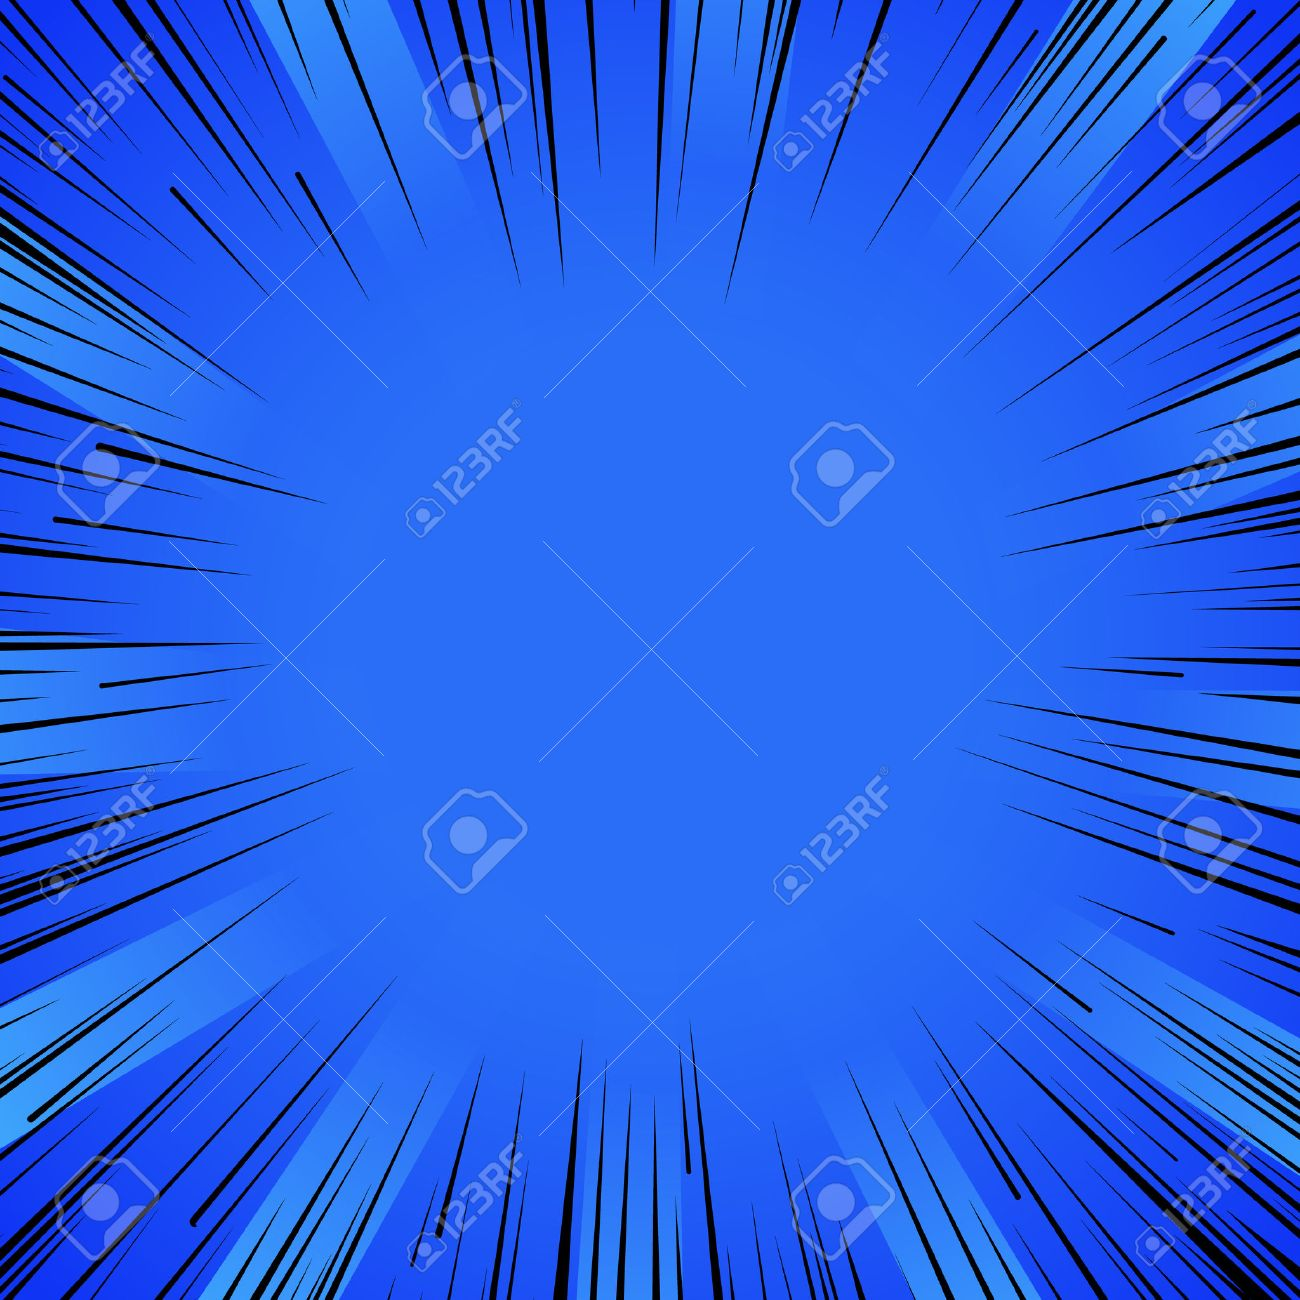 Abstract comic book flash explosion radial lines background. - 53985422